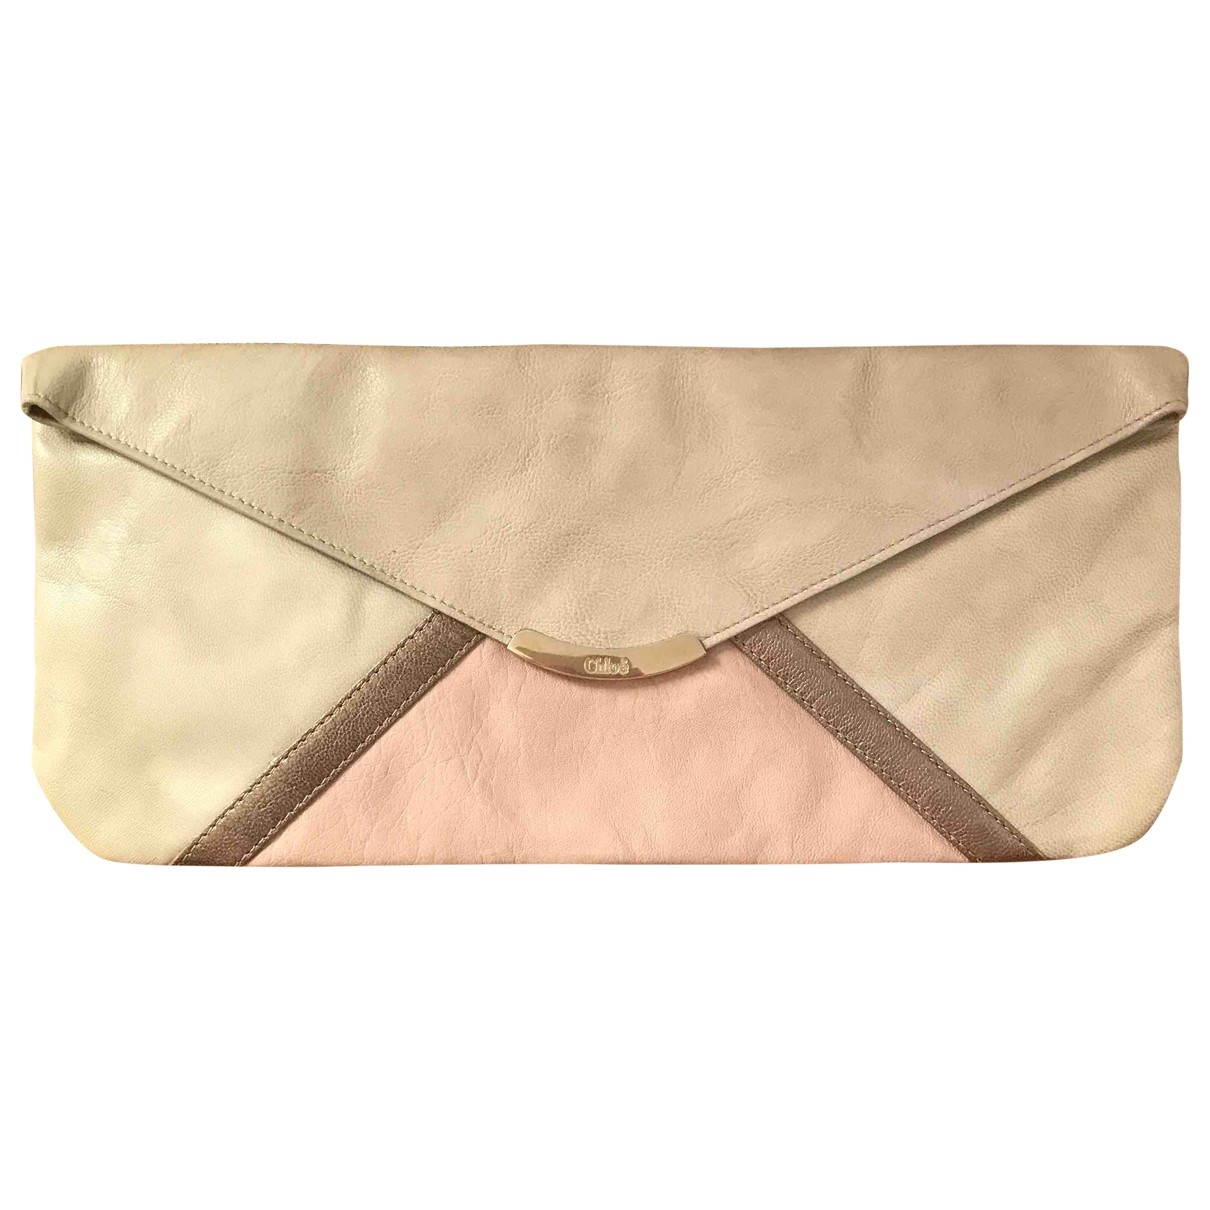 Chloe \N Clutch in  Bunt Leder